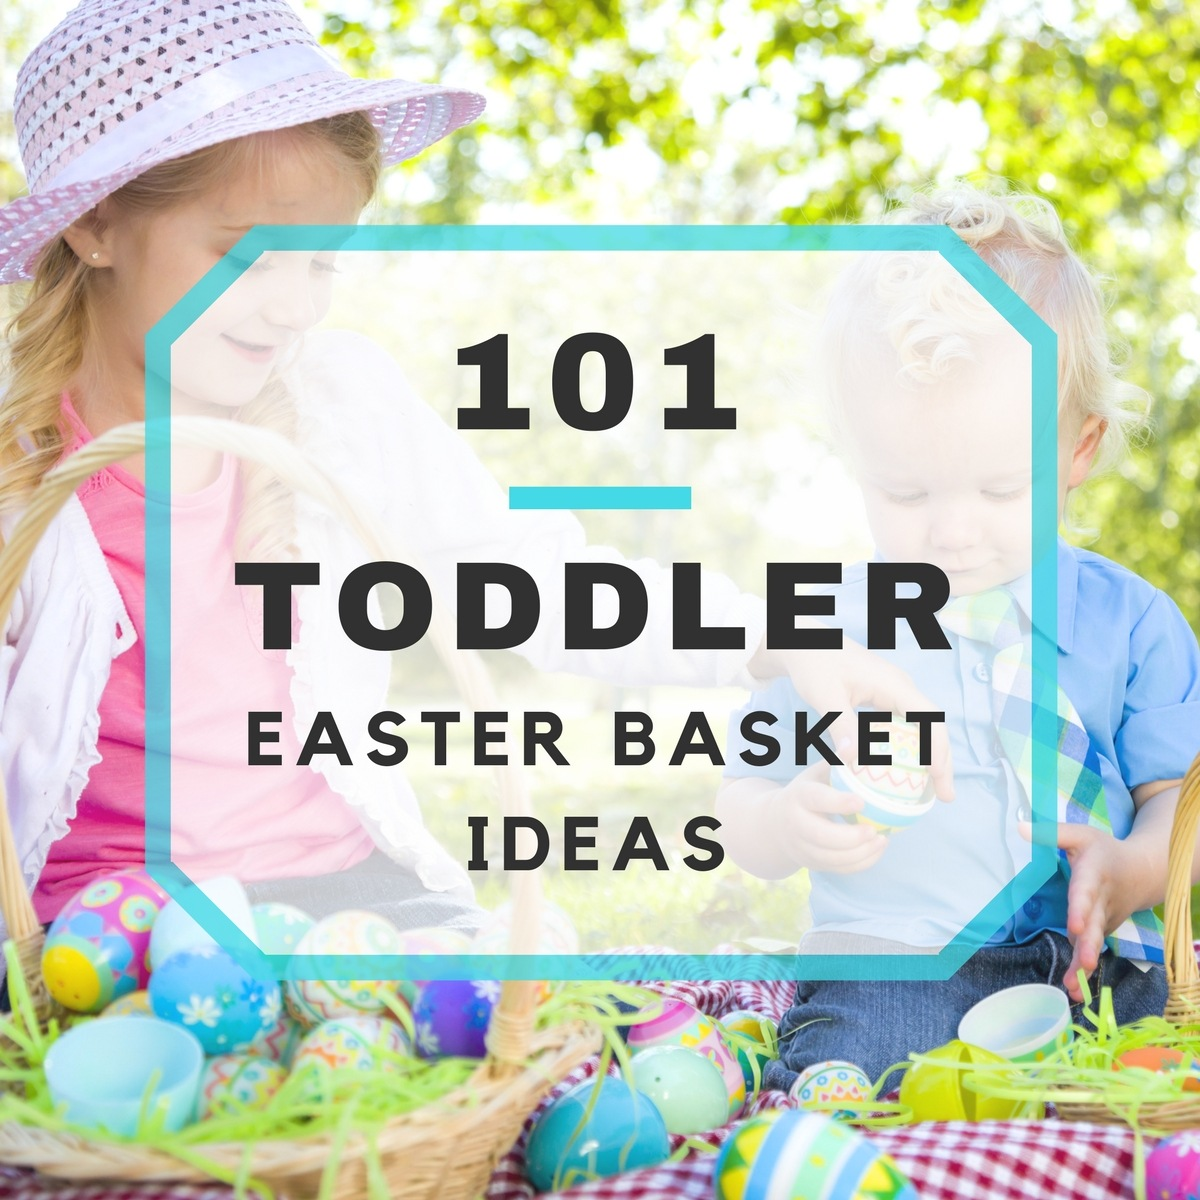 101 Toddler Easter Basket Ideas